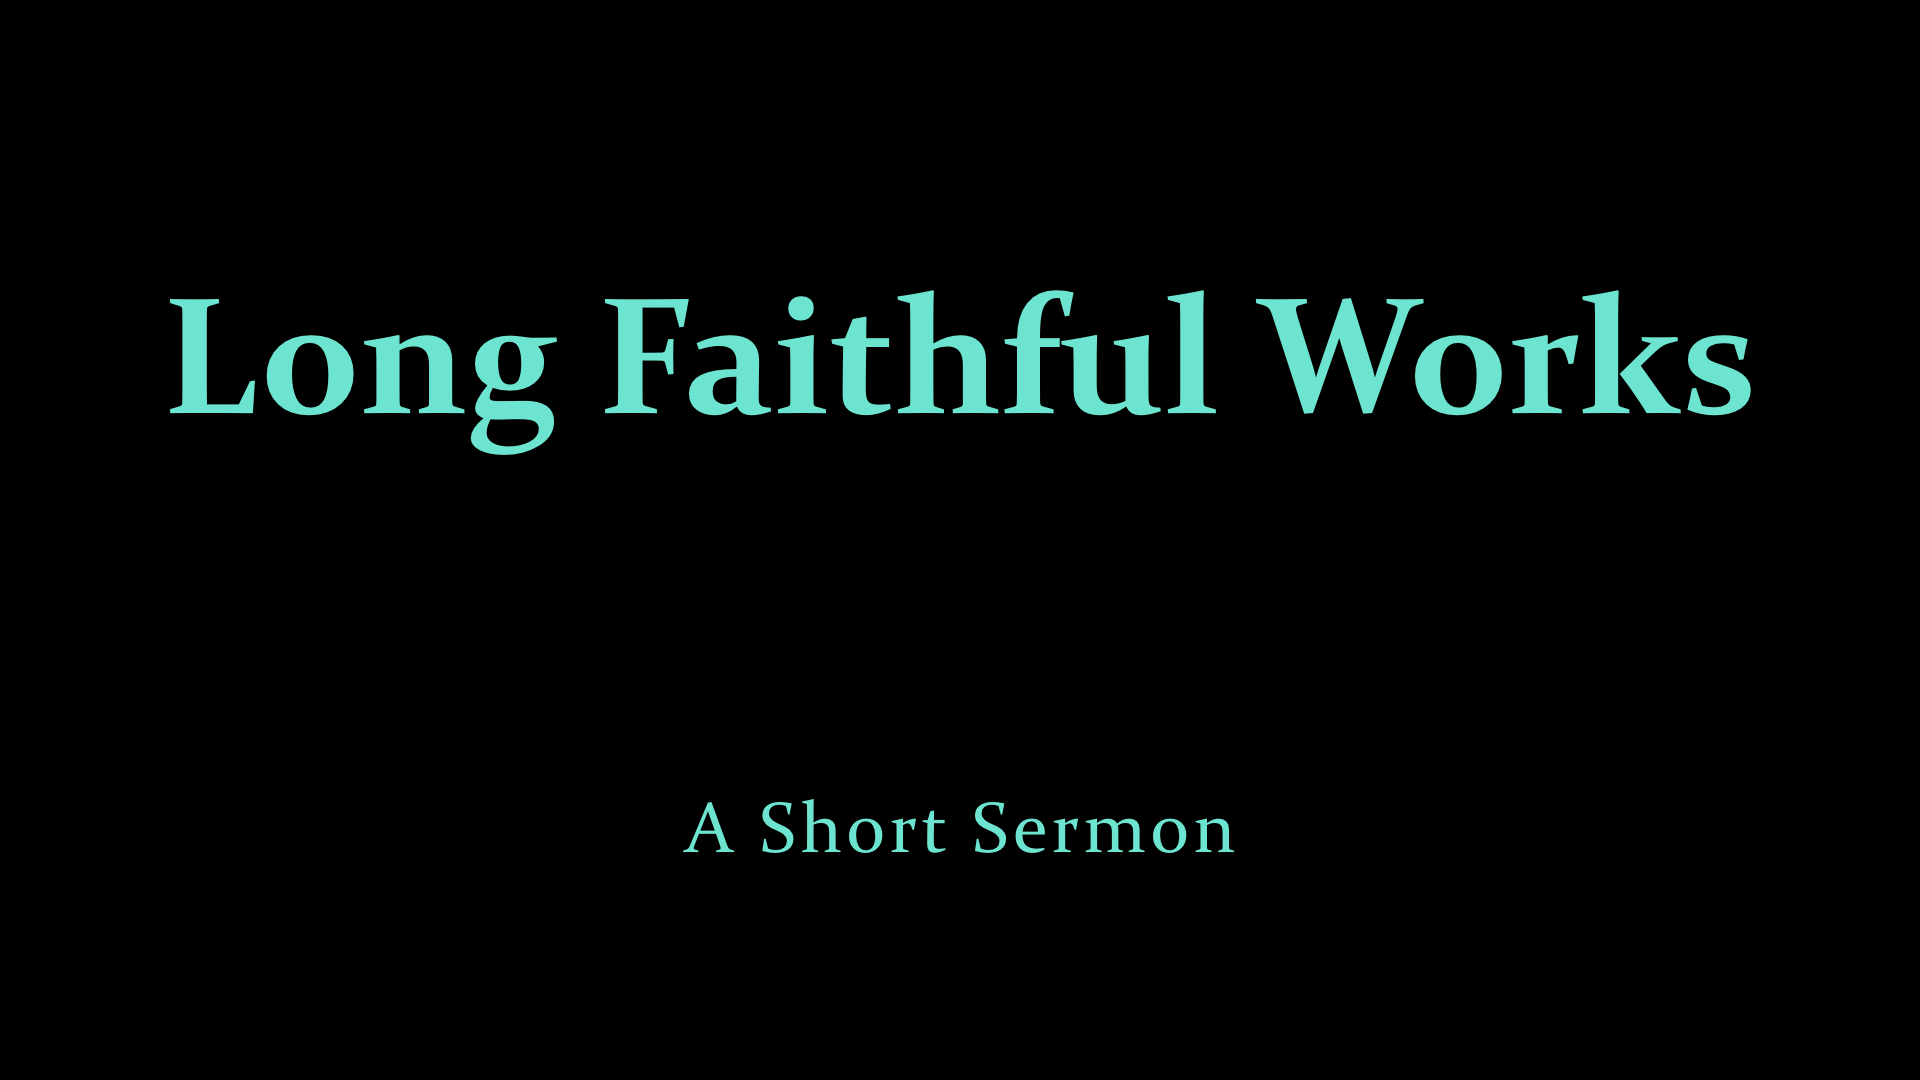 Long Faithful Works - A Short Sermon.jpeg